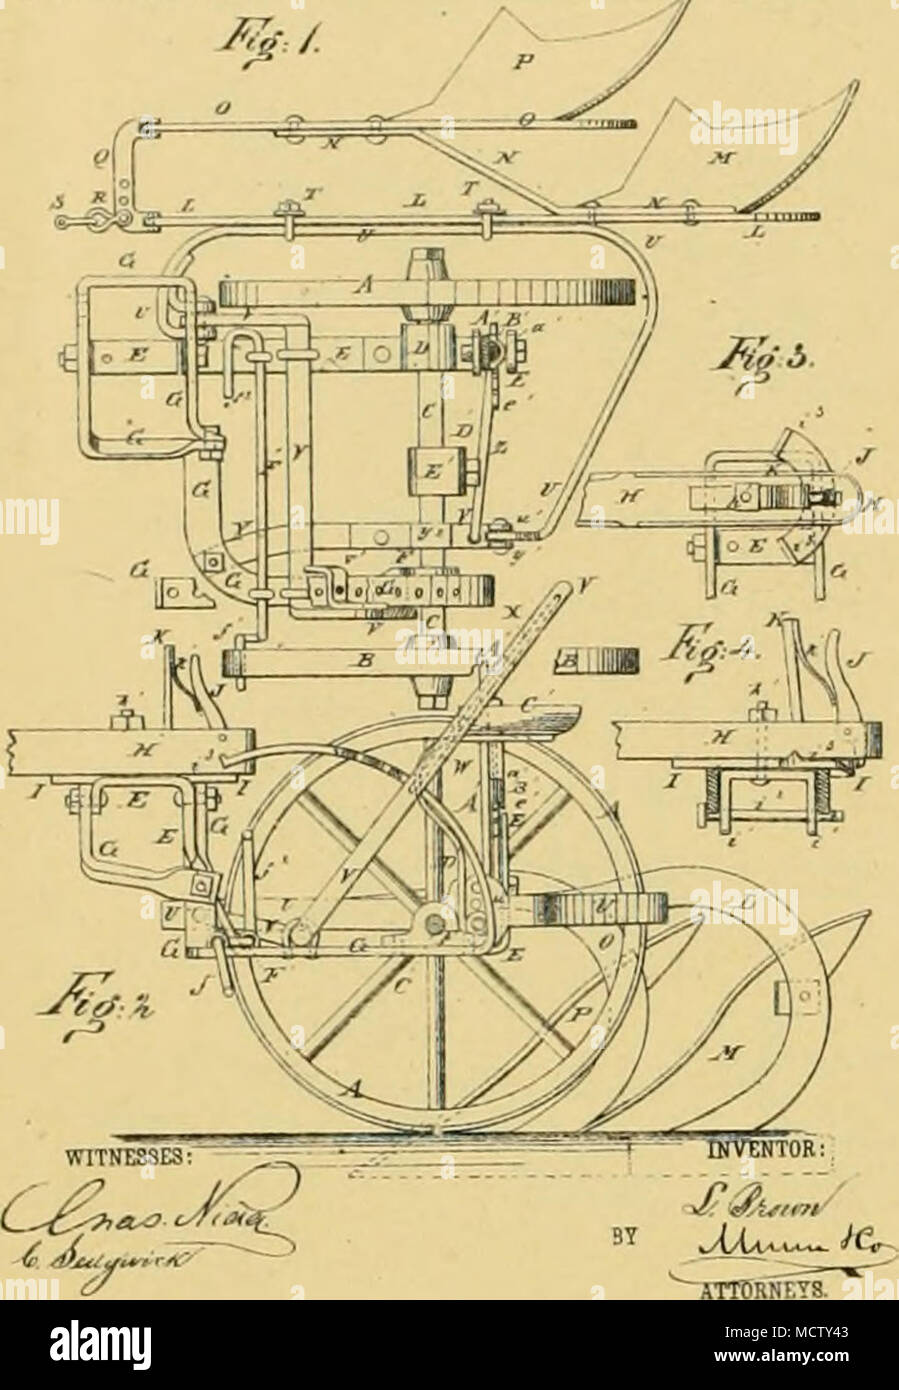 . t- M, FOSTER Snlky-Plow No. 226,739. Patented April 20. 1830. - Stock Image